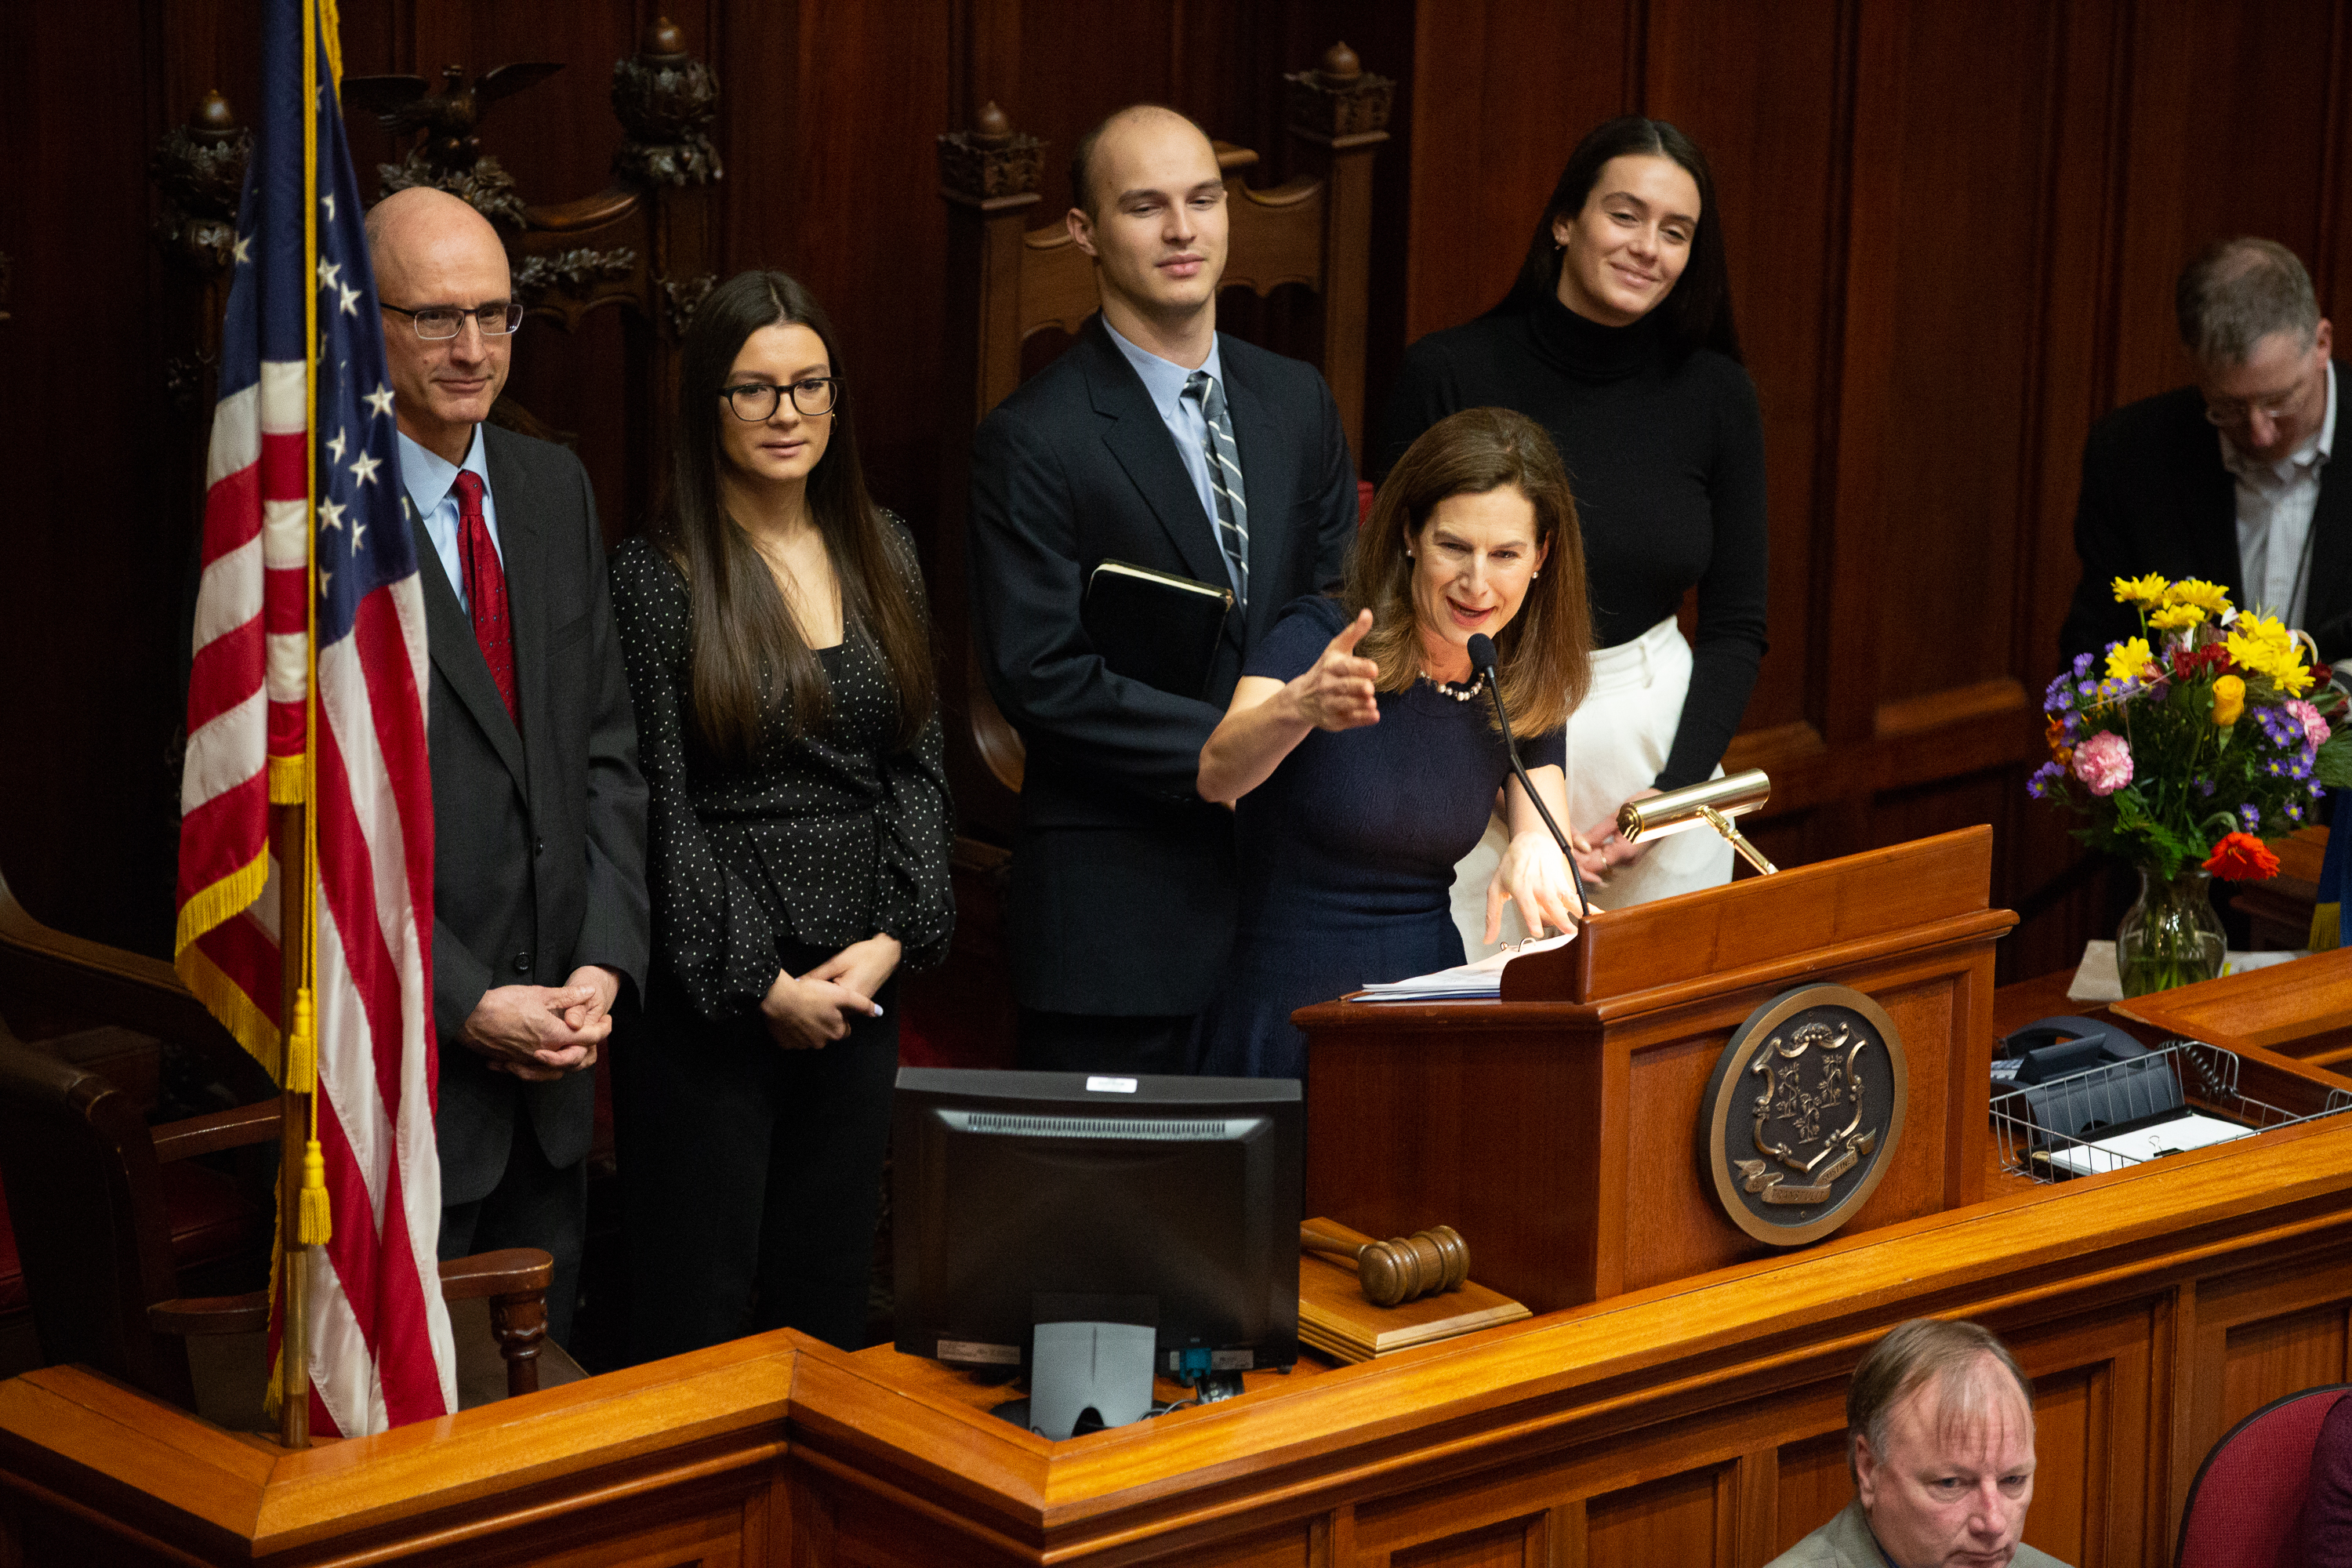 Lawmakers find hope in diversity, bipartisanship as 2019 legislative session opens